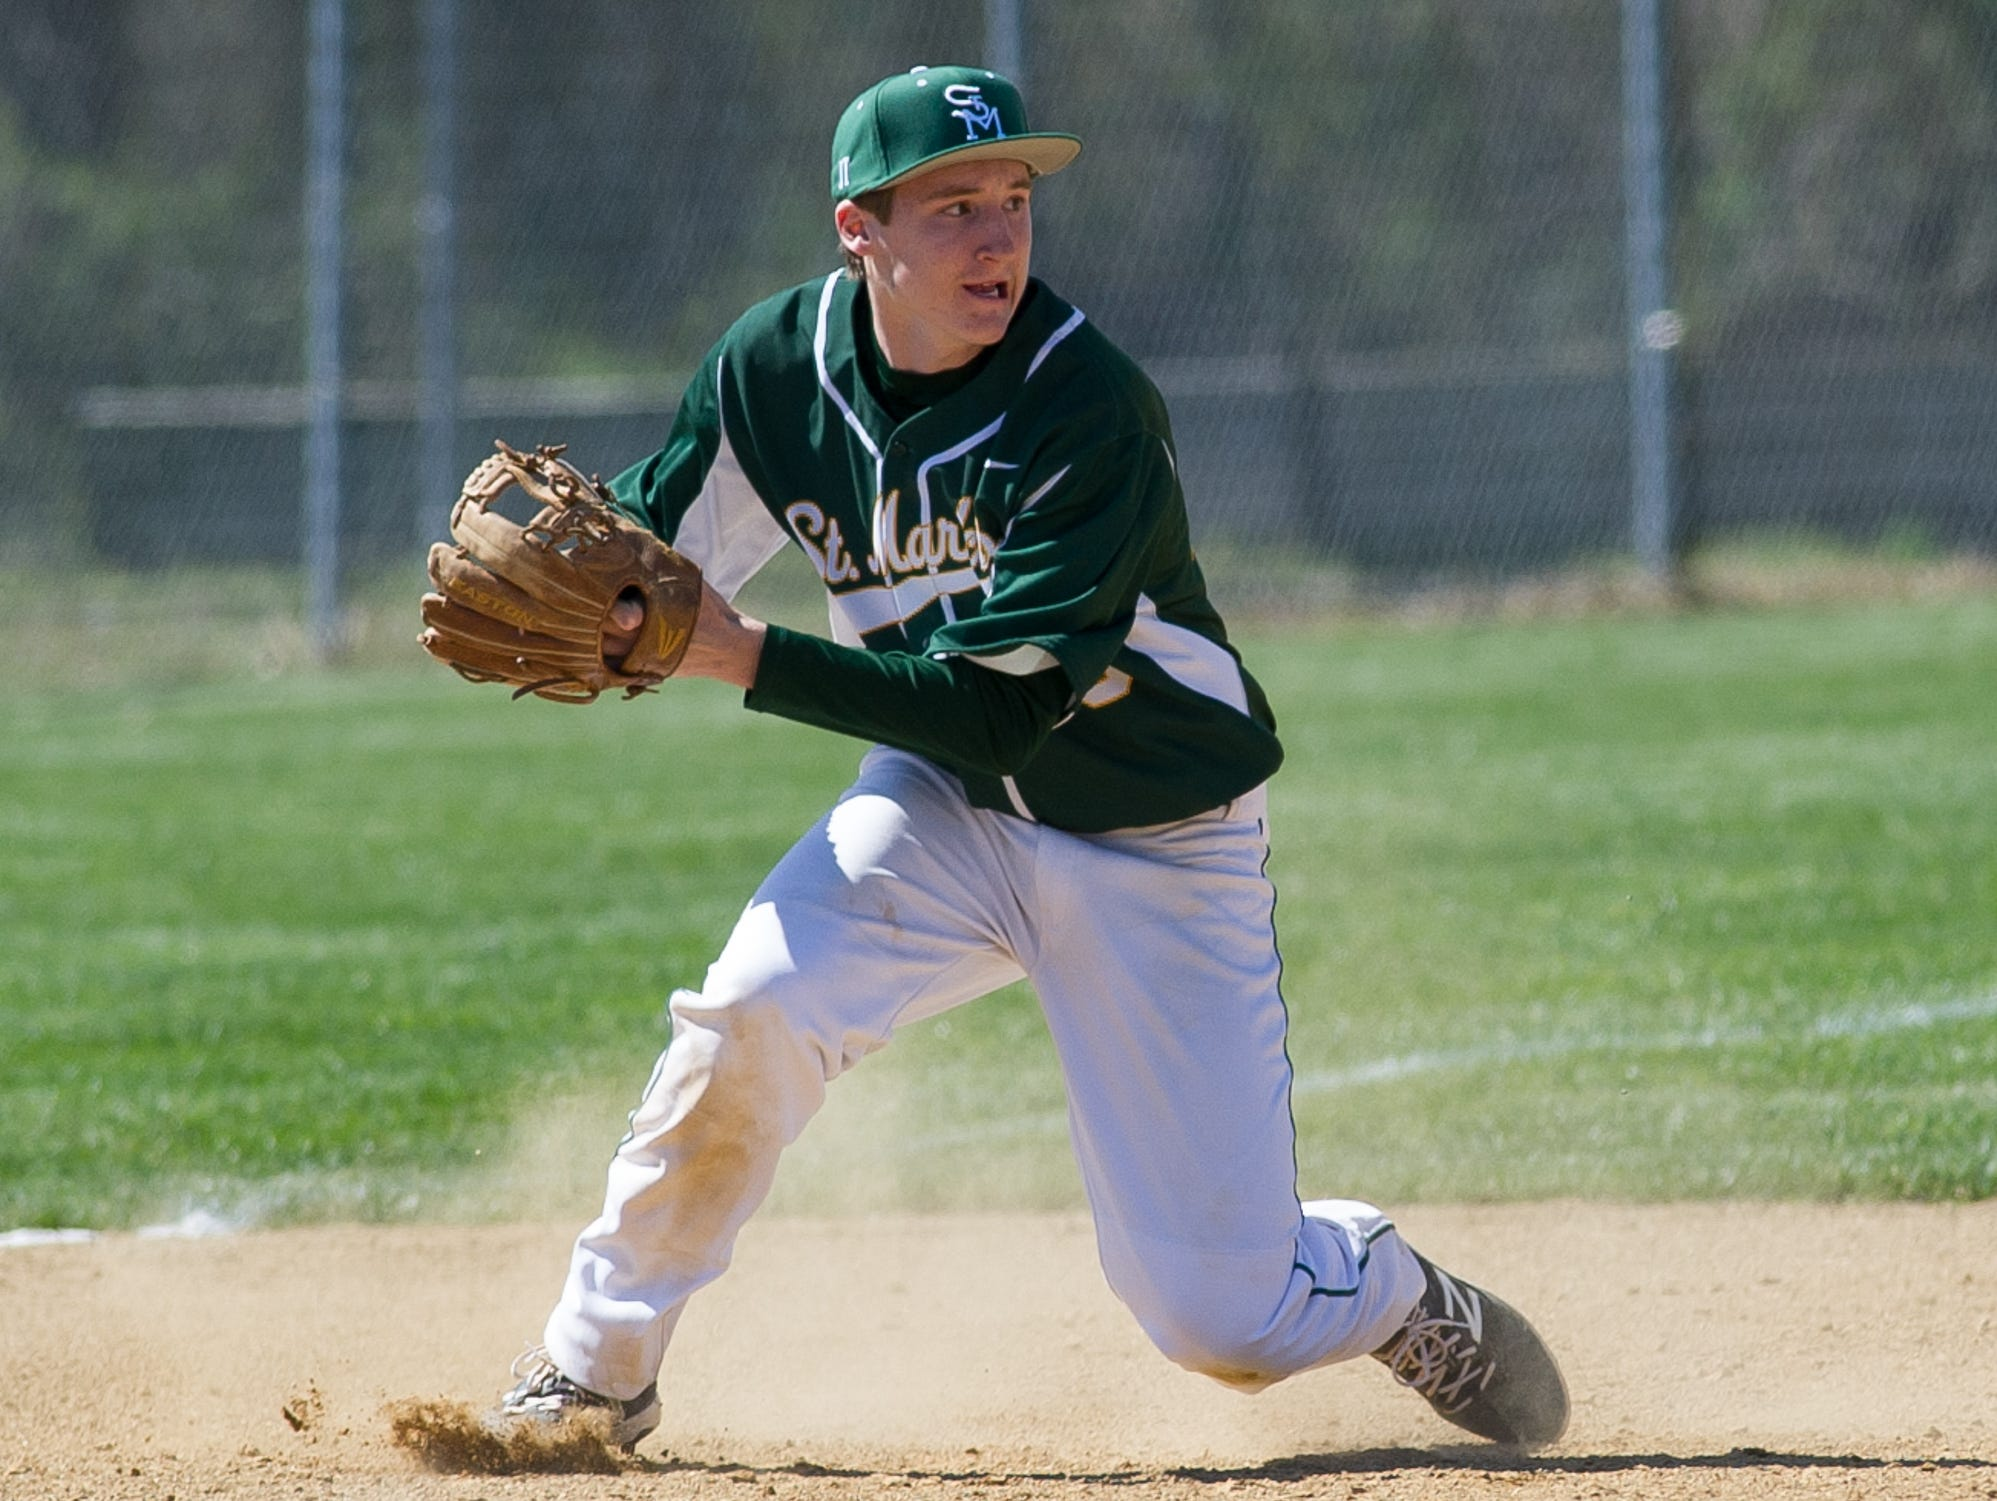 St. Mark's Christopher Ludman (20) makes a throw to second base for a out in the 3rd inning against Caesar Rodney.